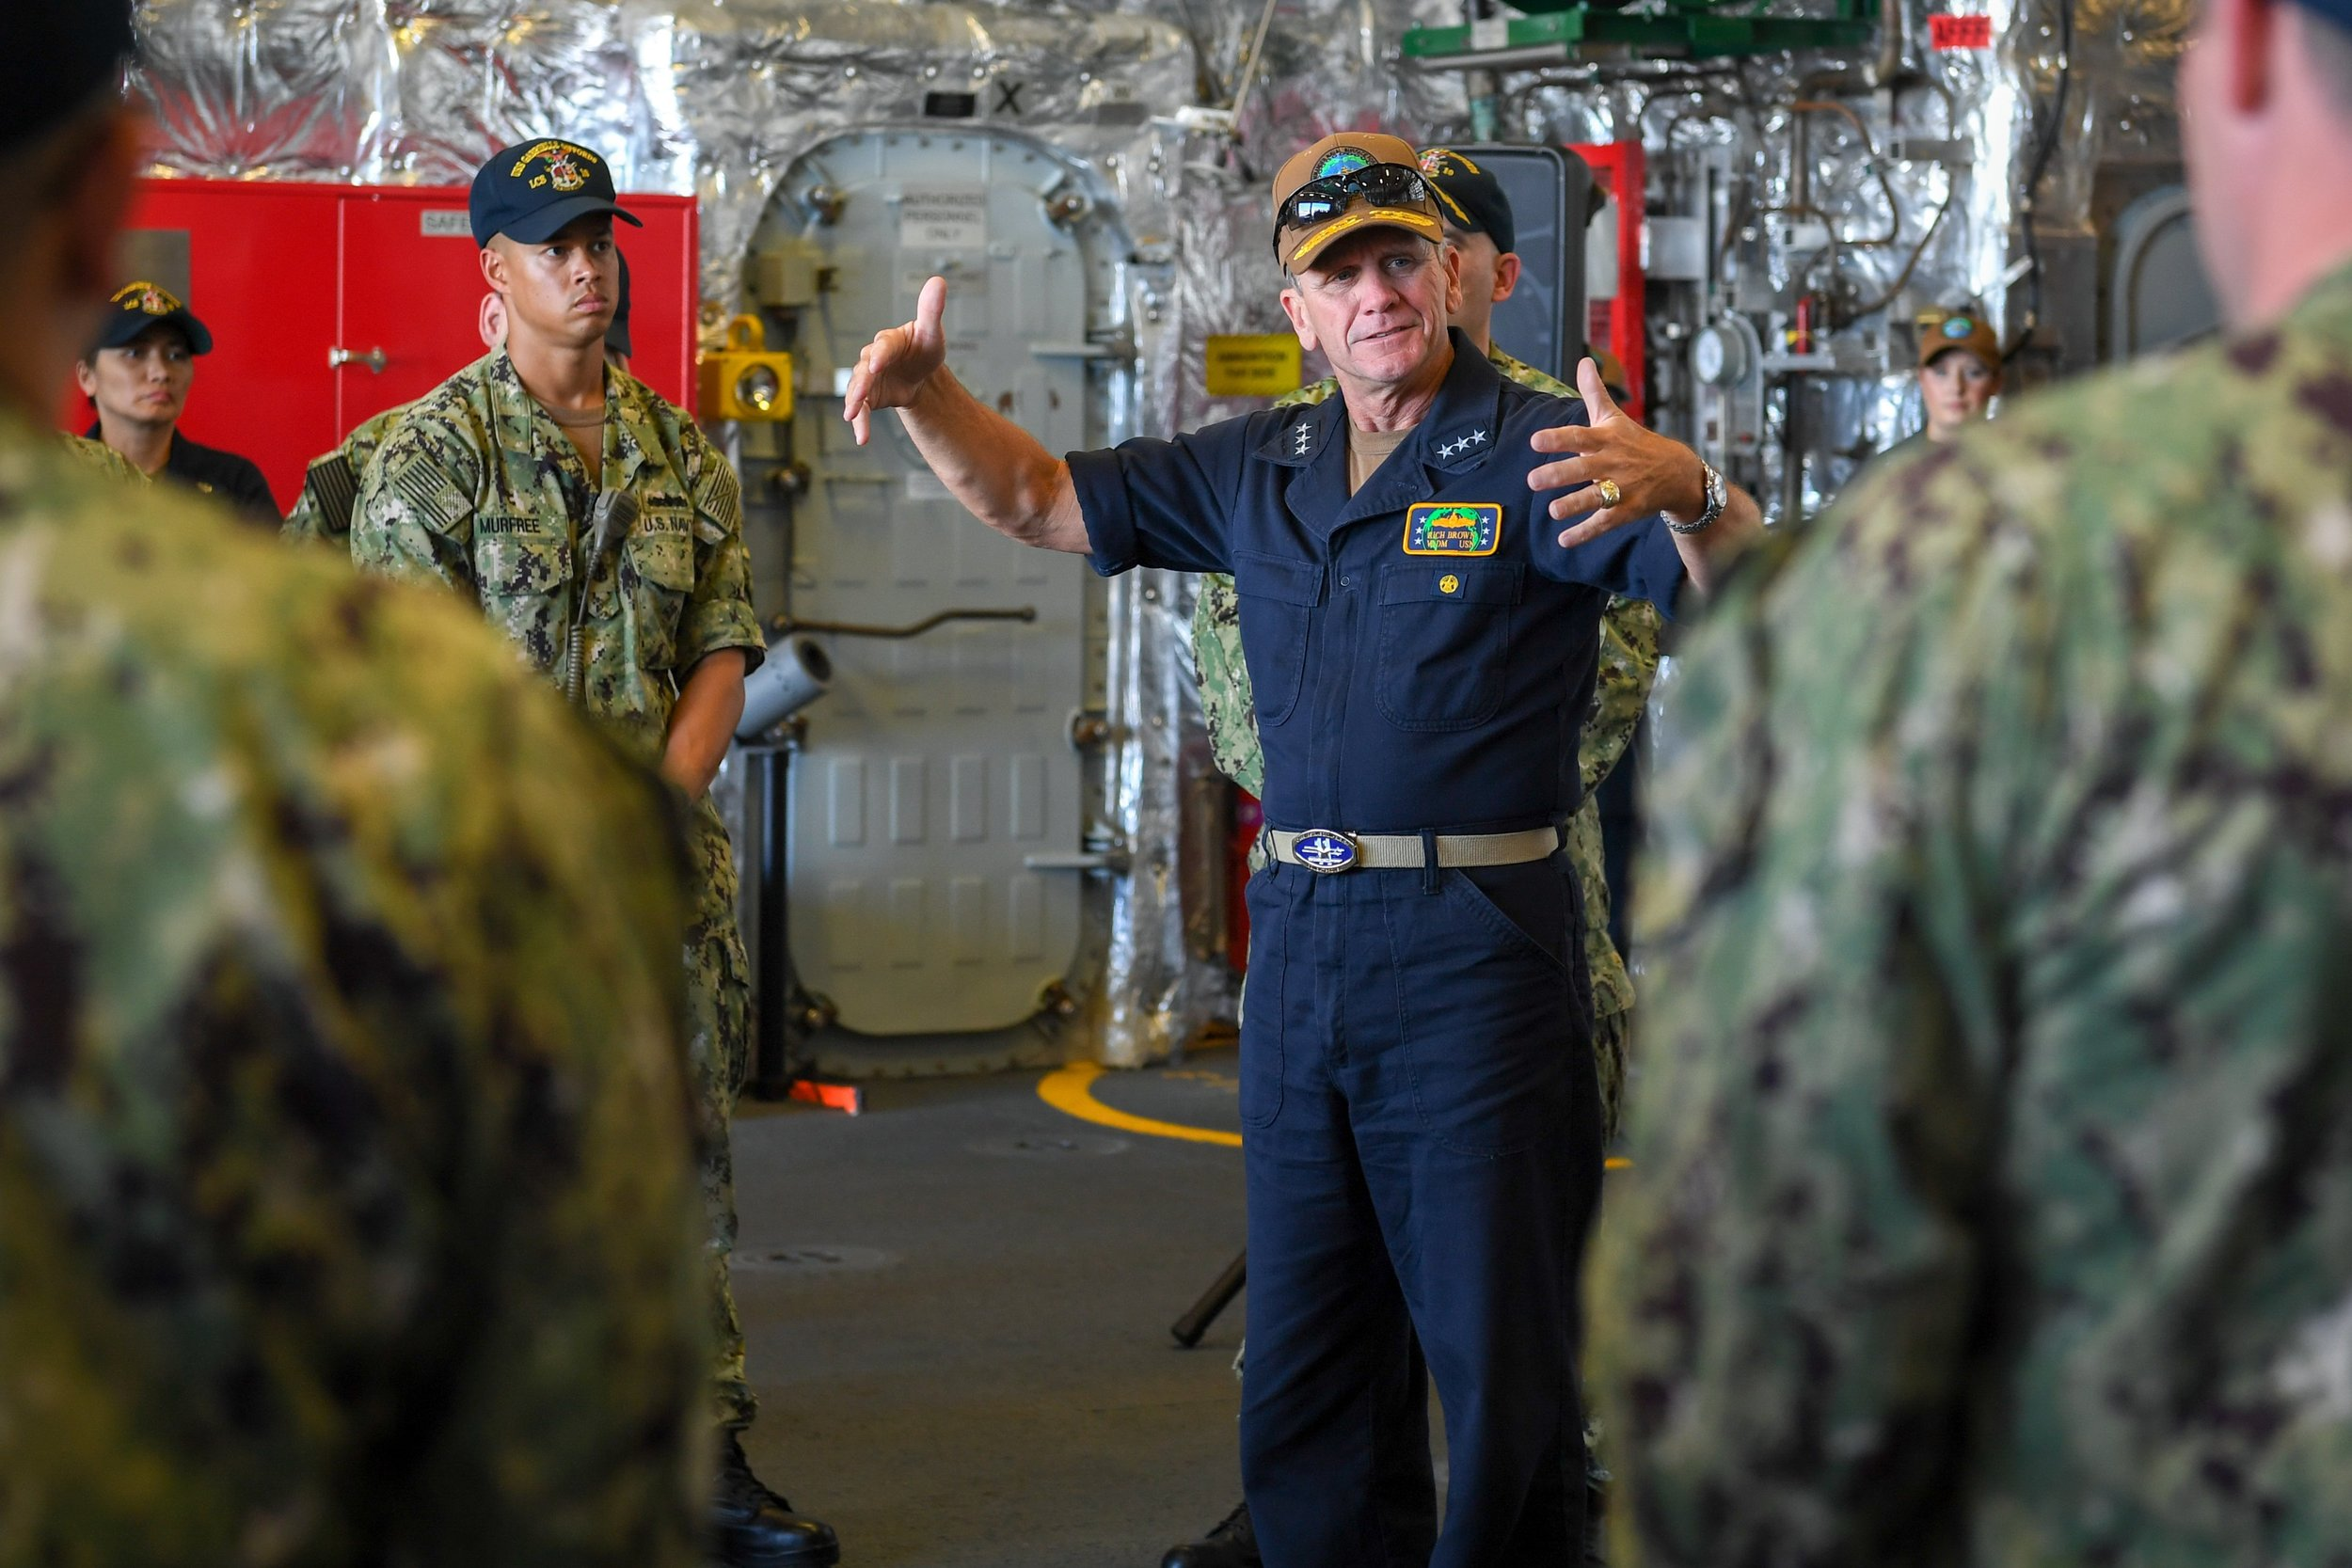 Vice Adm. Richard Brown, Commander, Naval Surface Force, U.S. Pacific Fleet, addresses Sailors assigned to USS Gabrielle Giffords (LCS-10) on Aug. 26, 2019. US Navy Photo